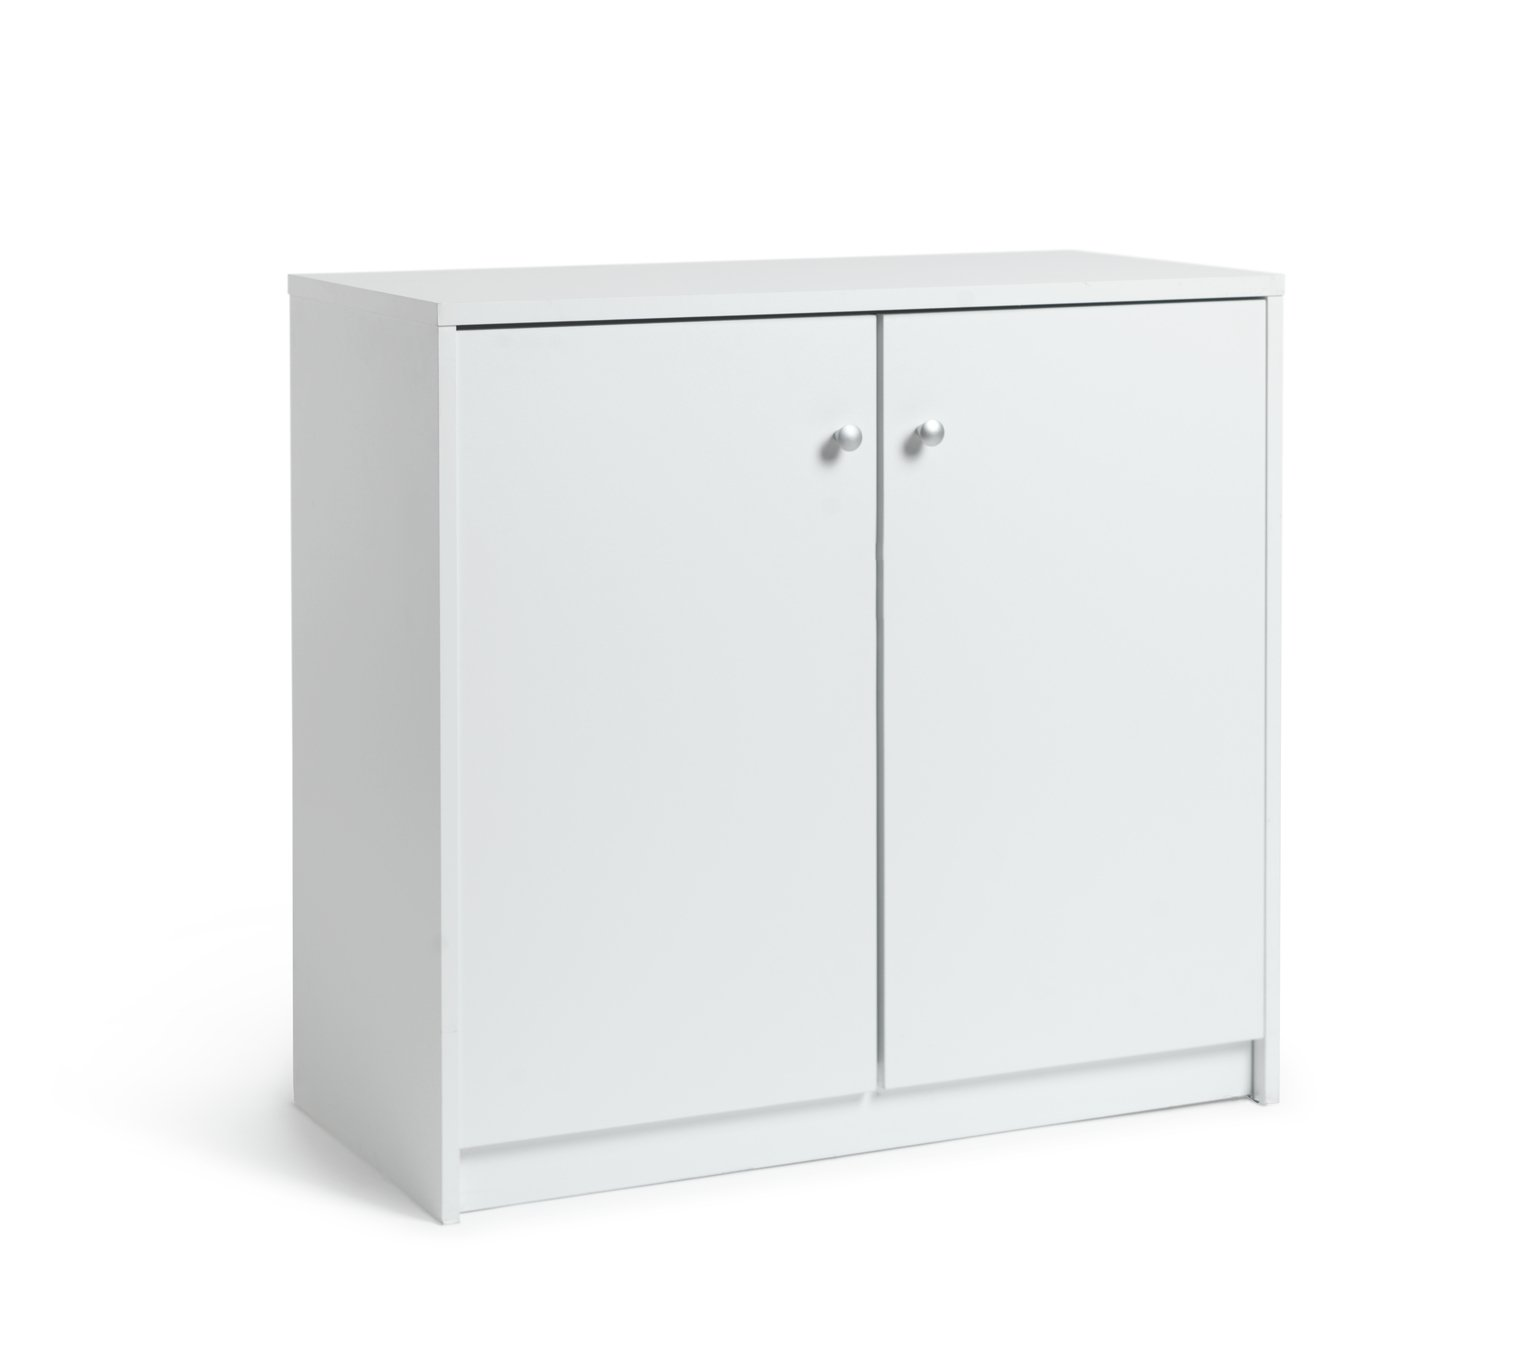 Argos Home 2 Door Sideboard review